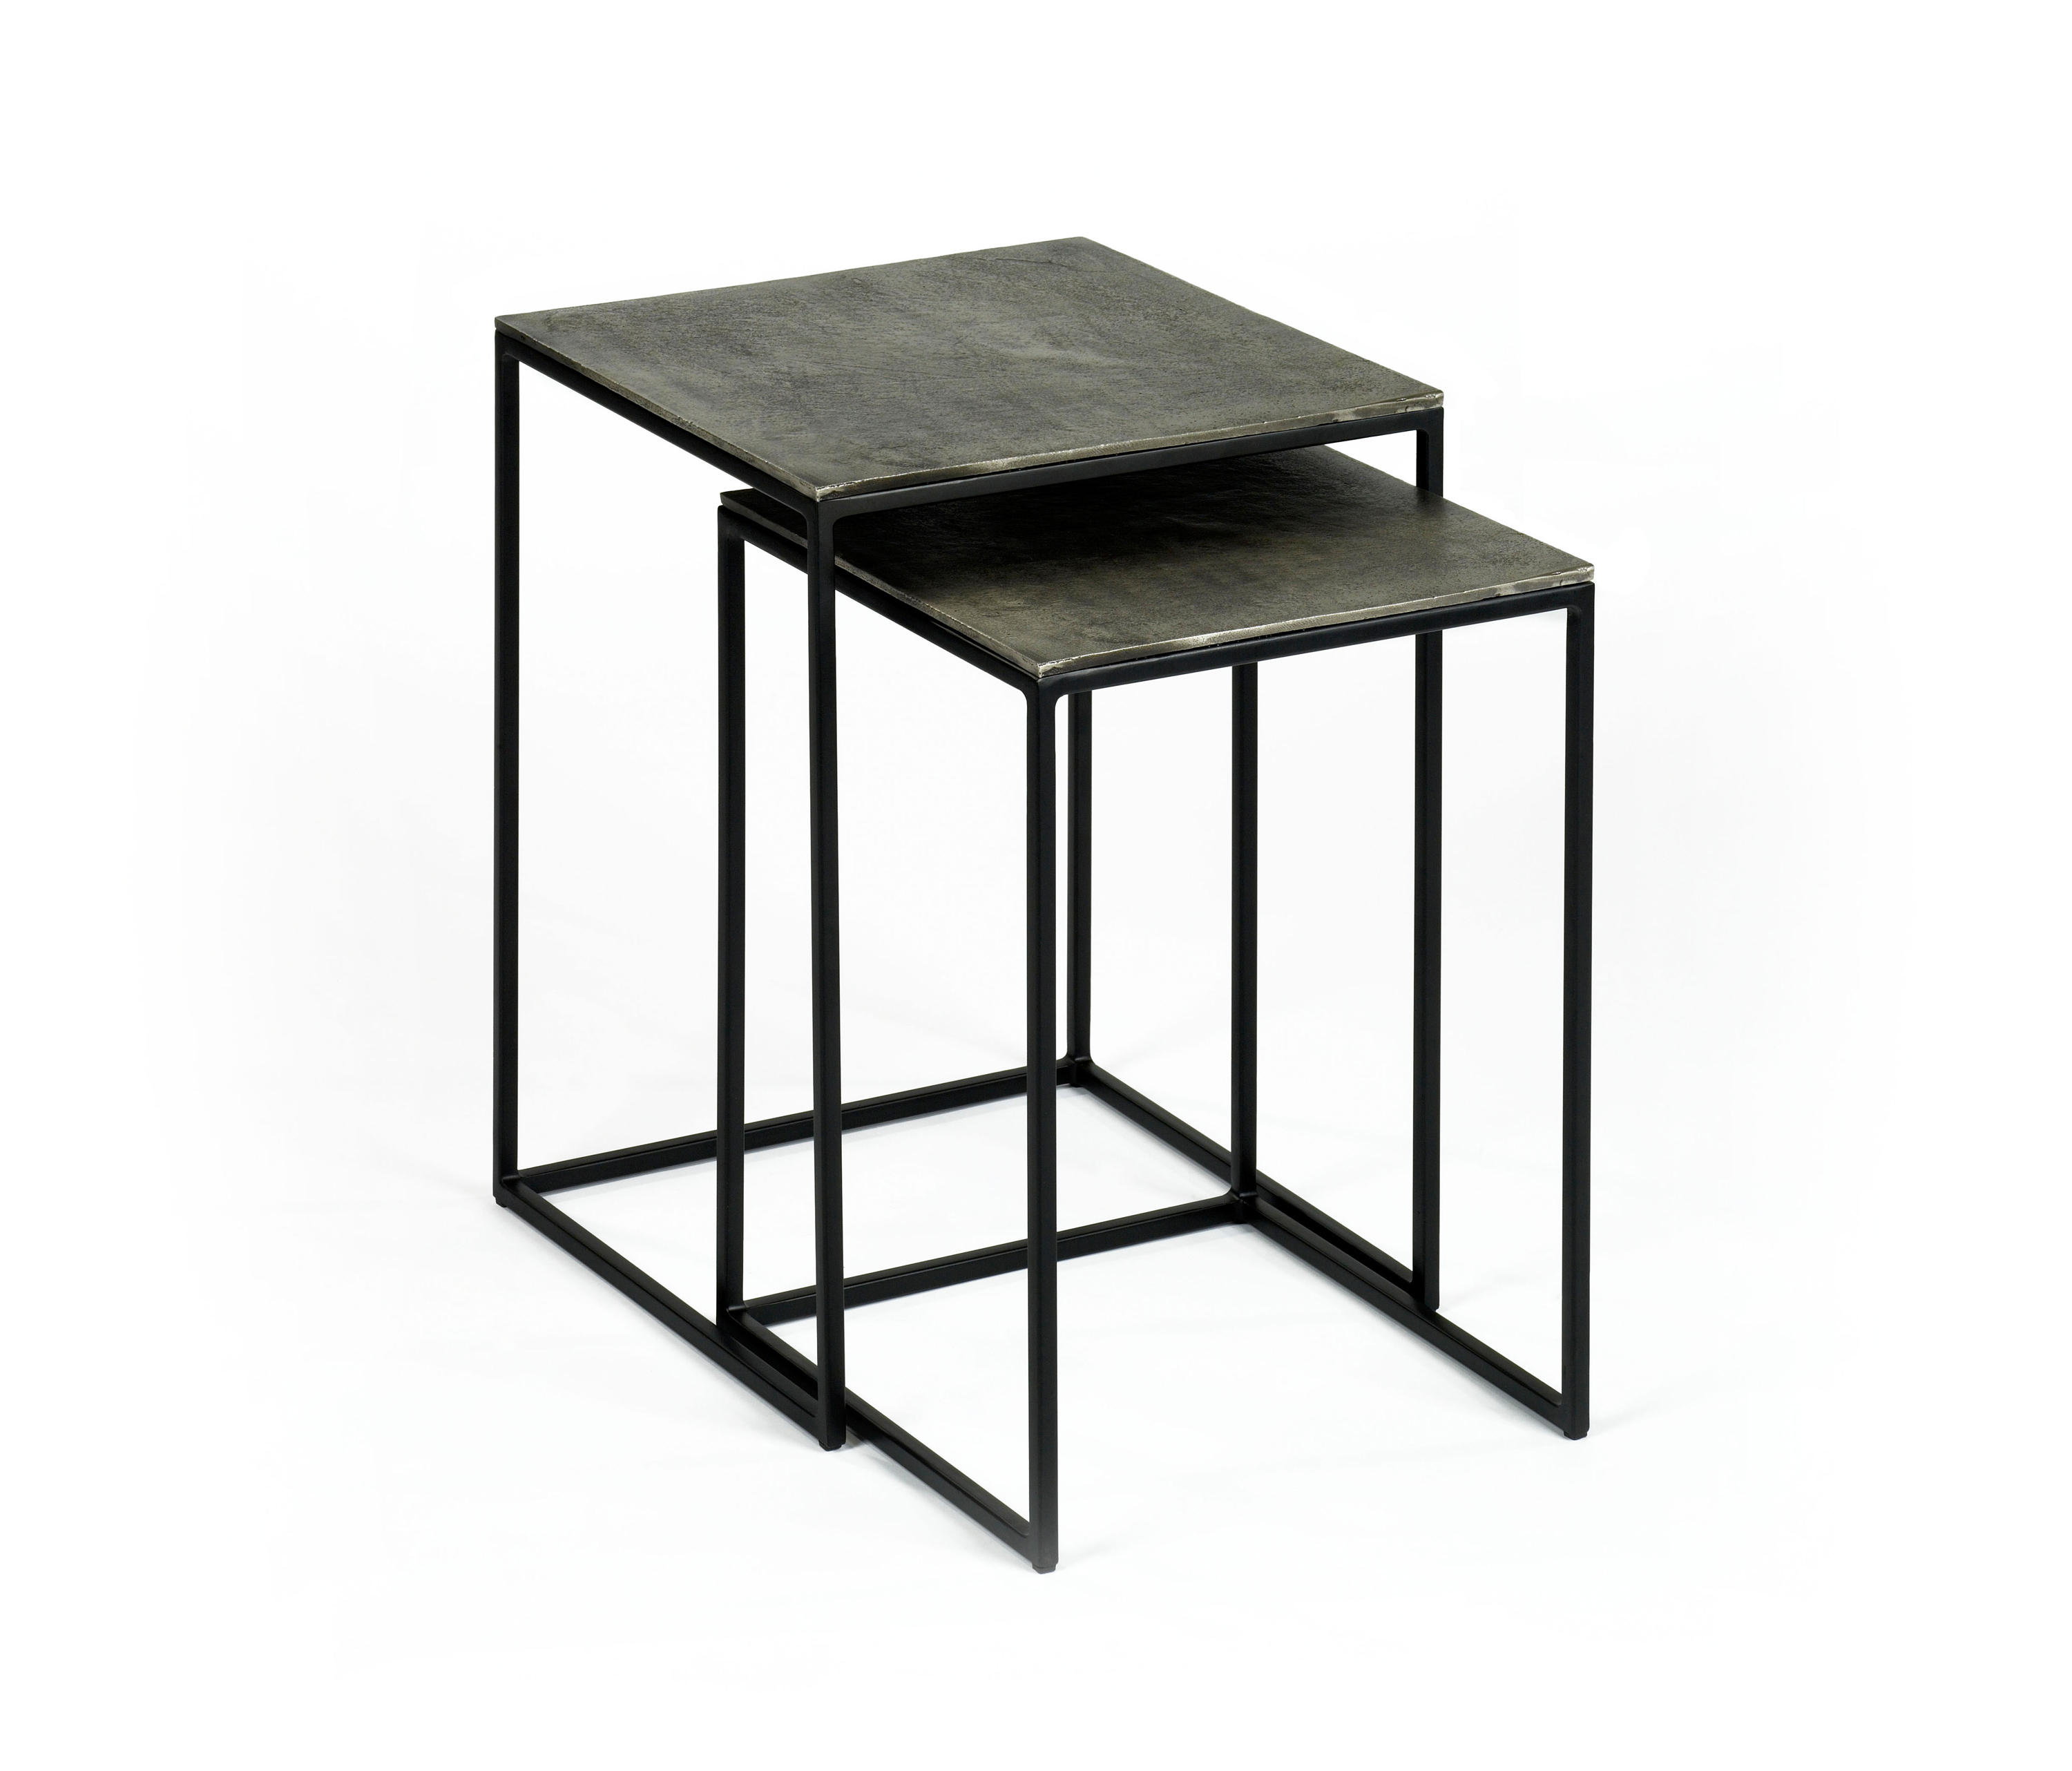 dado couch table nesting tables from lambert architonic. Black Bedroom Furniture Sets. Home Design Ideas